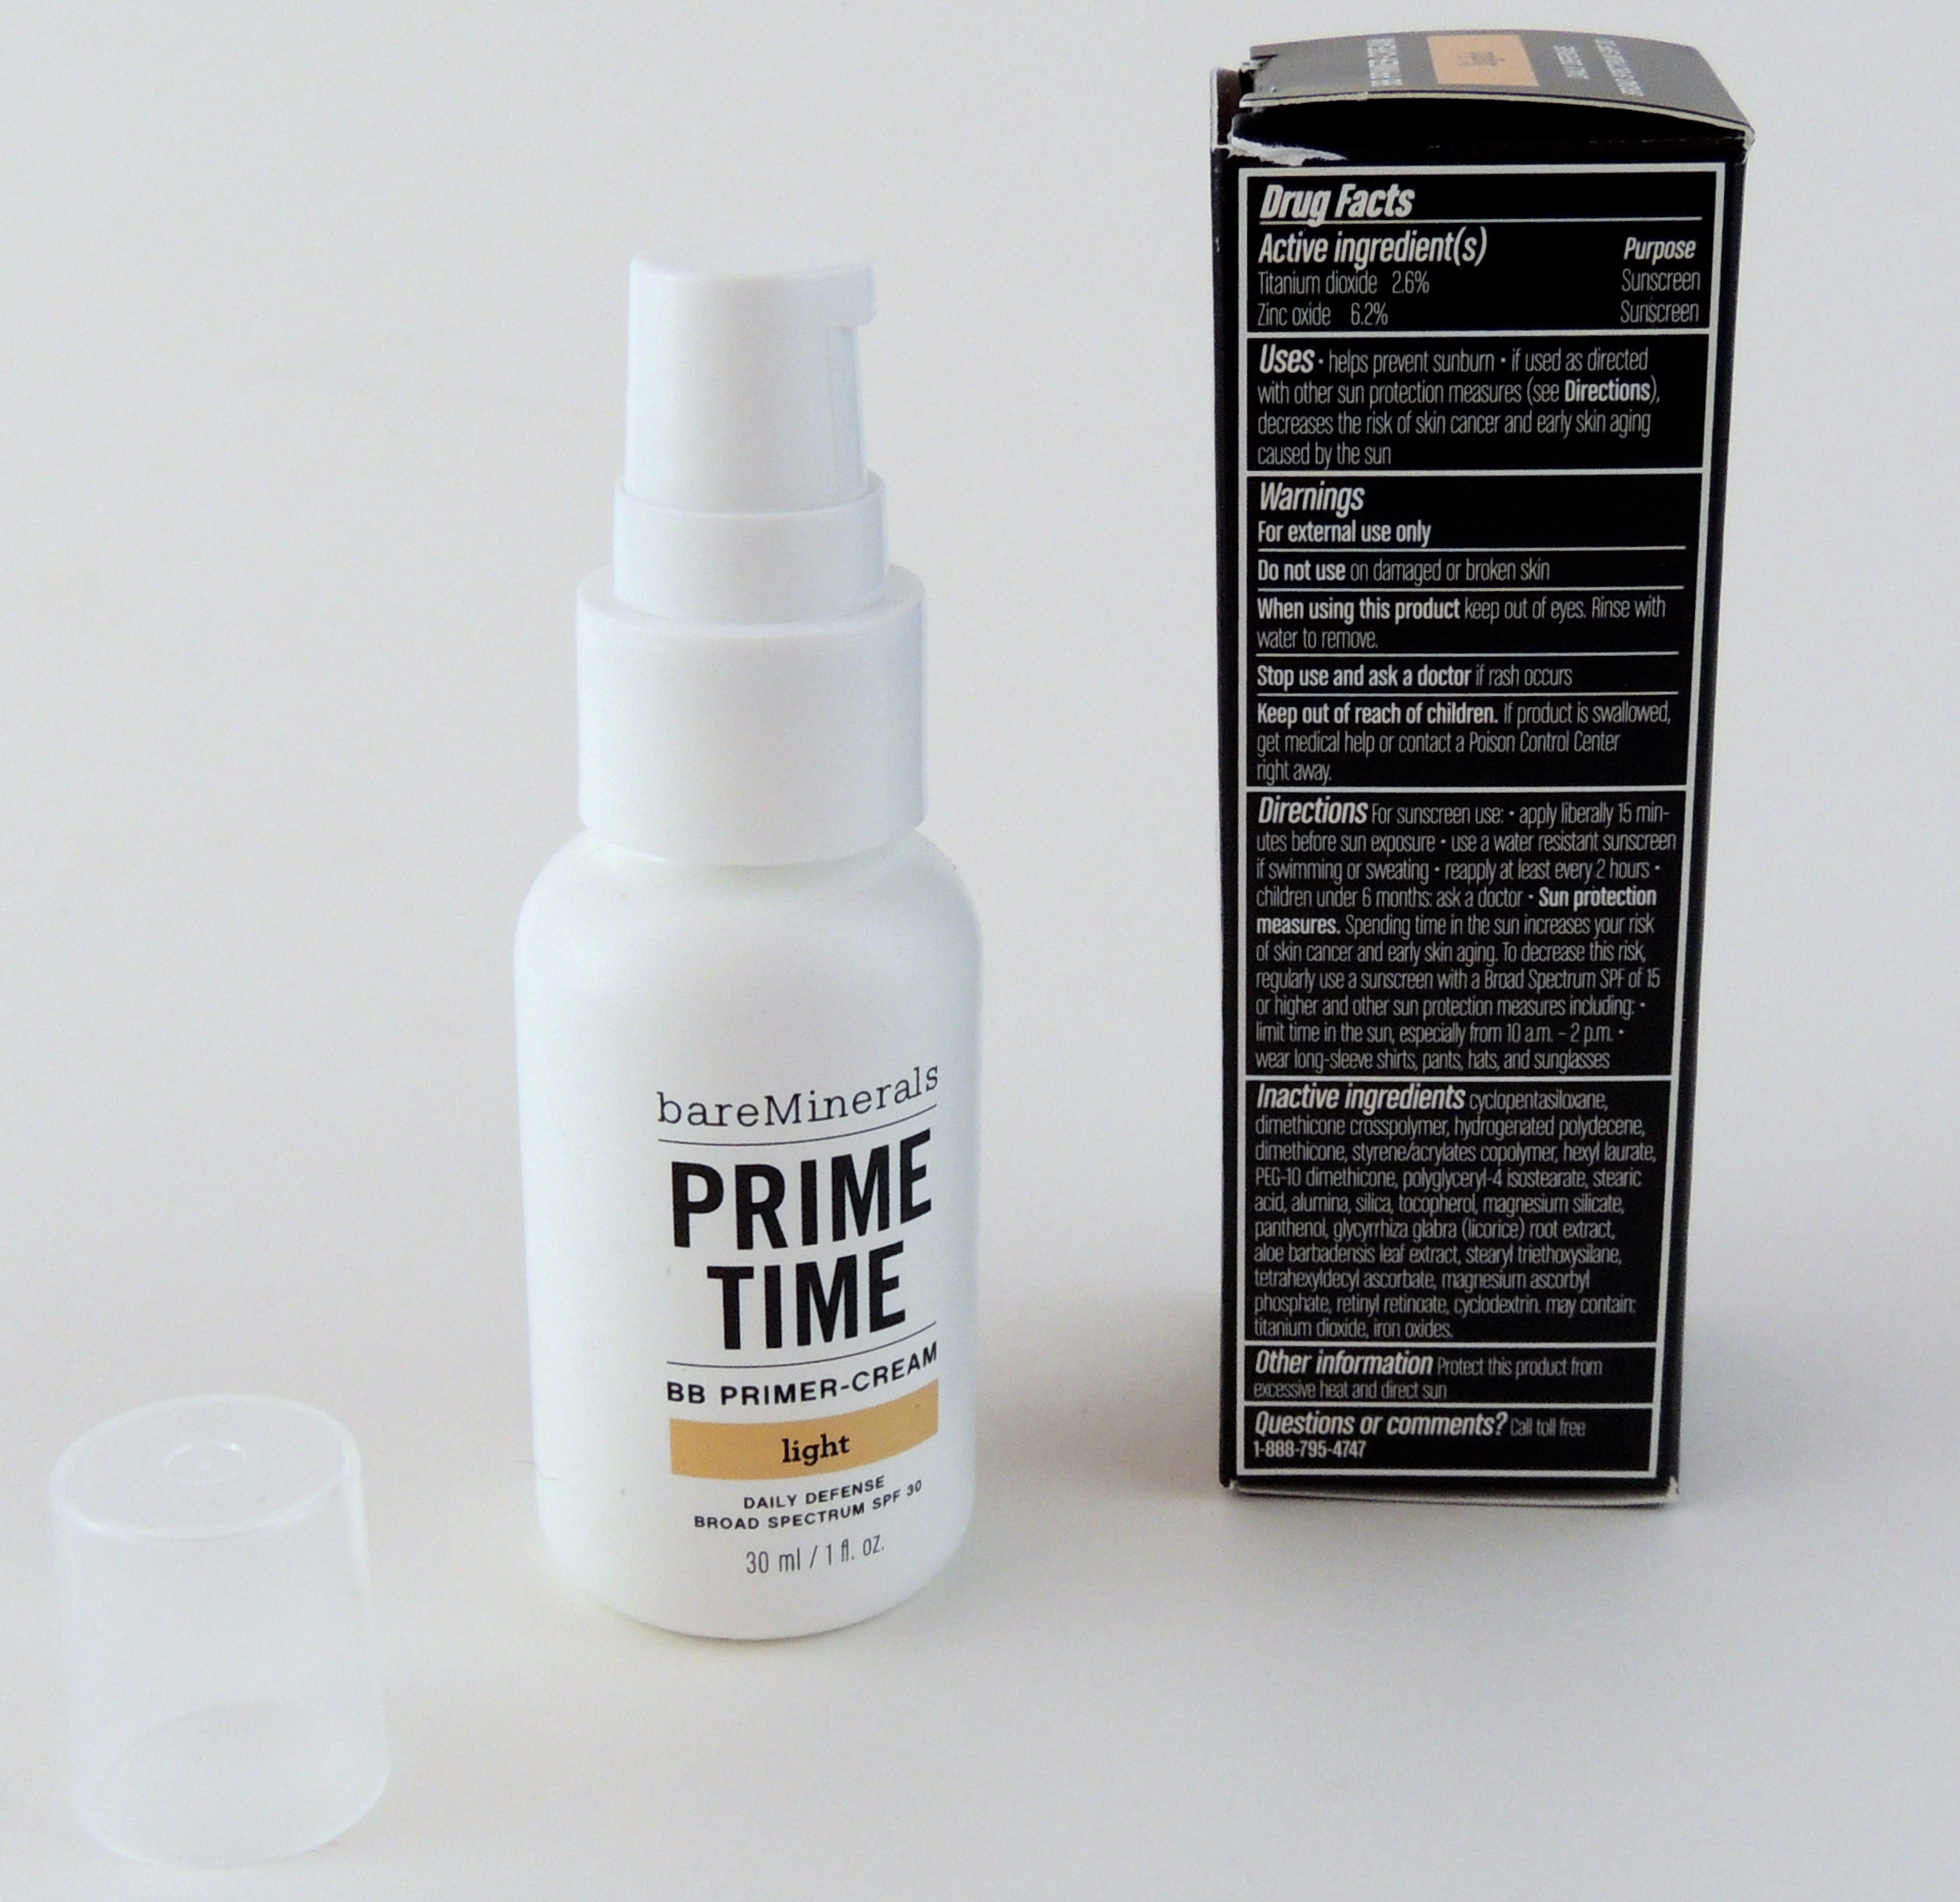 bareminerals prime time bb primer cream give me gorgeous. Black Bedroom Furniture Sets. Home Design Ideas